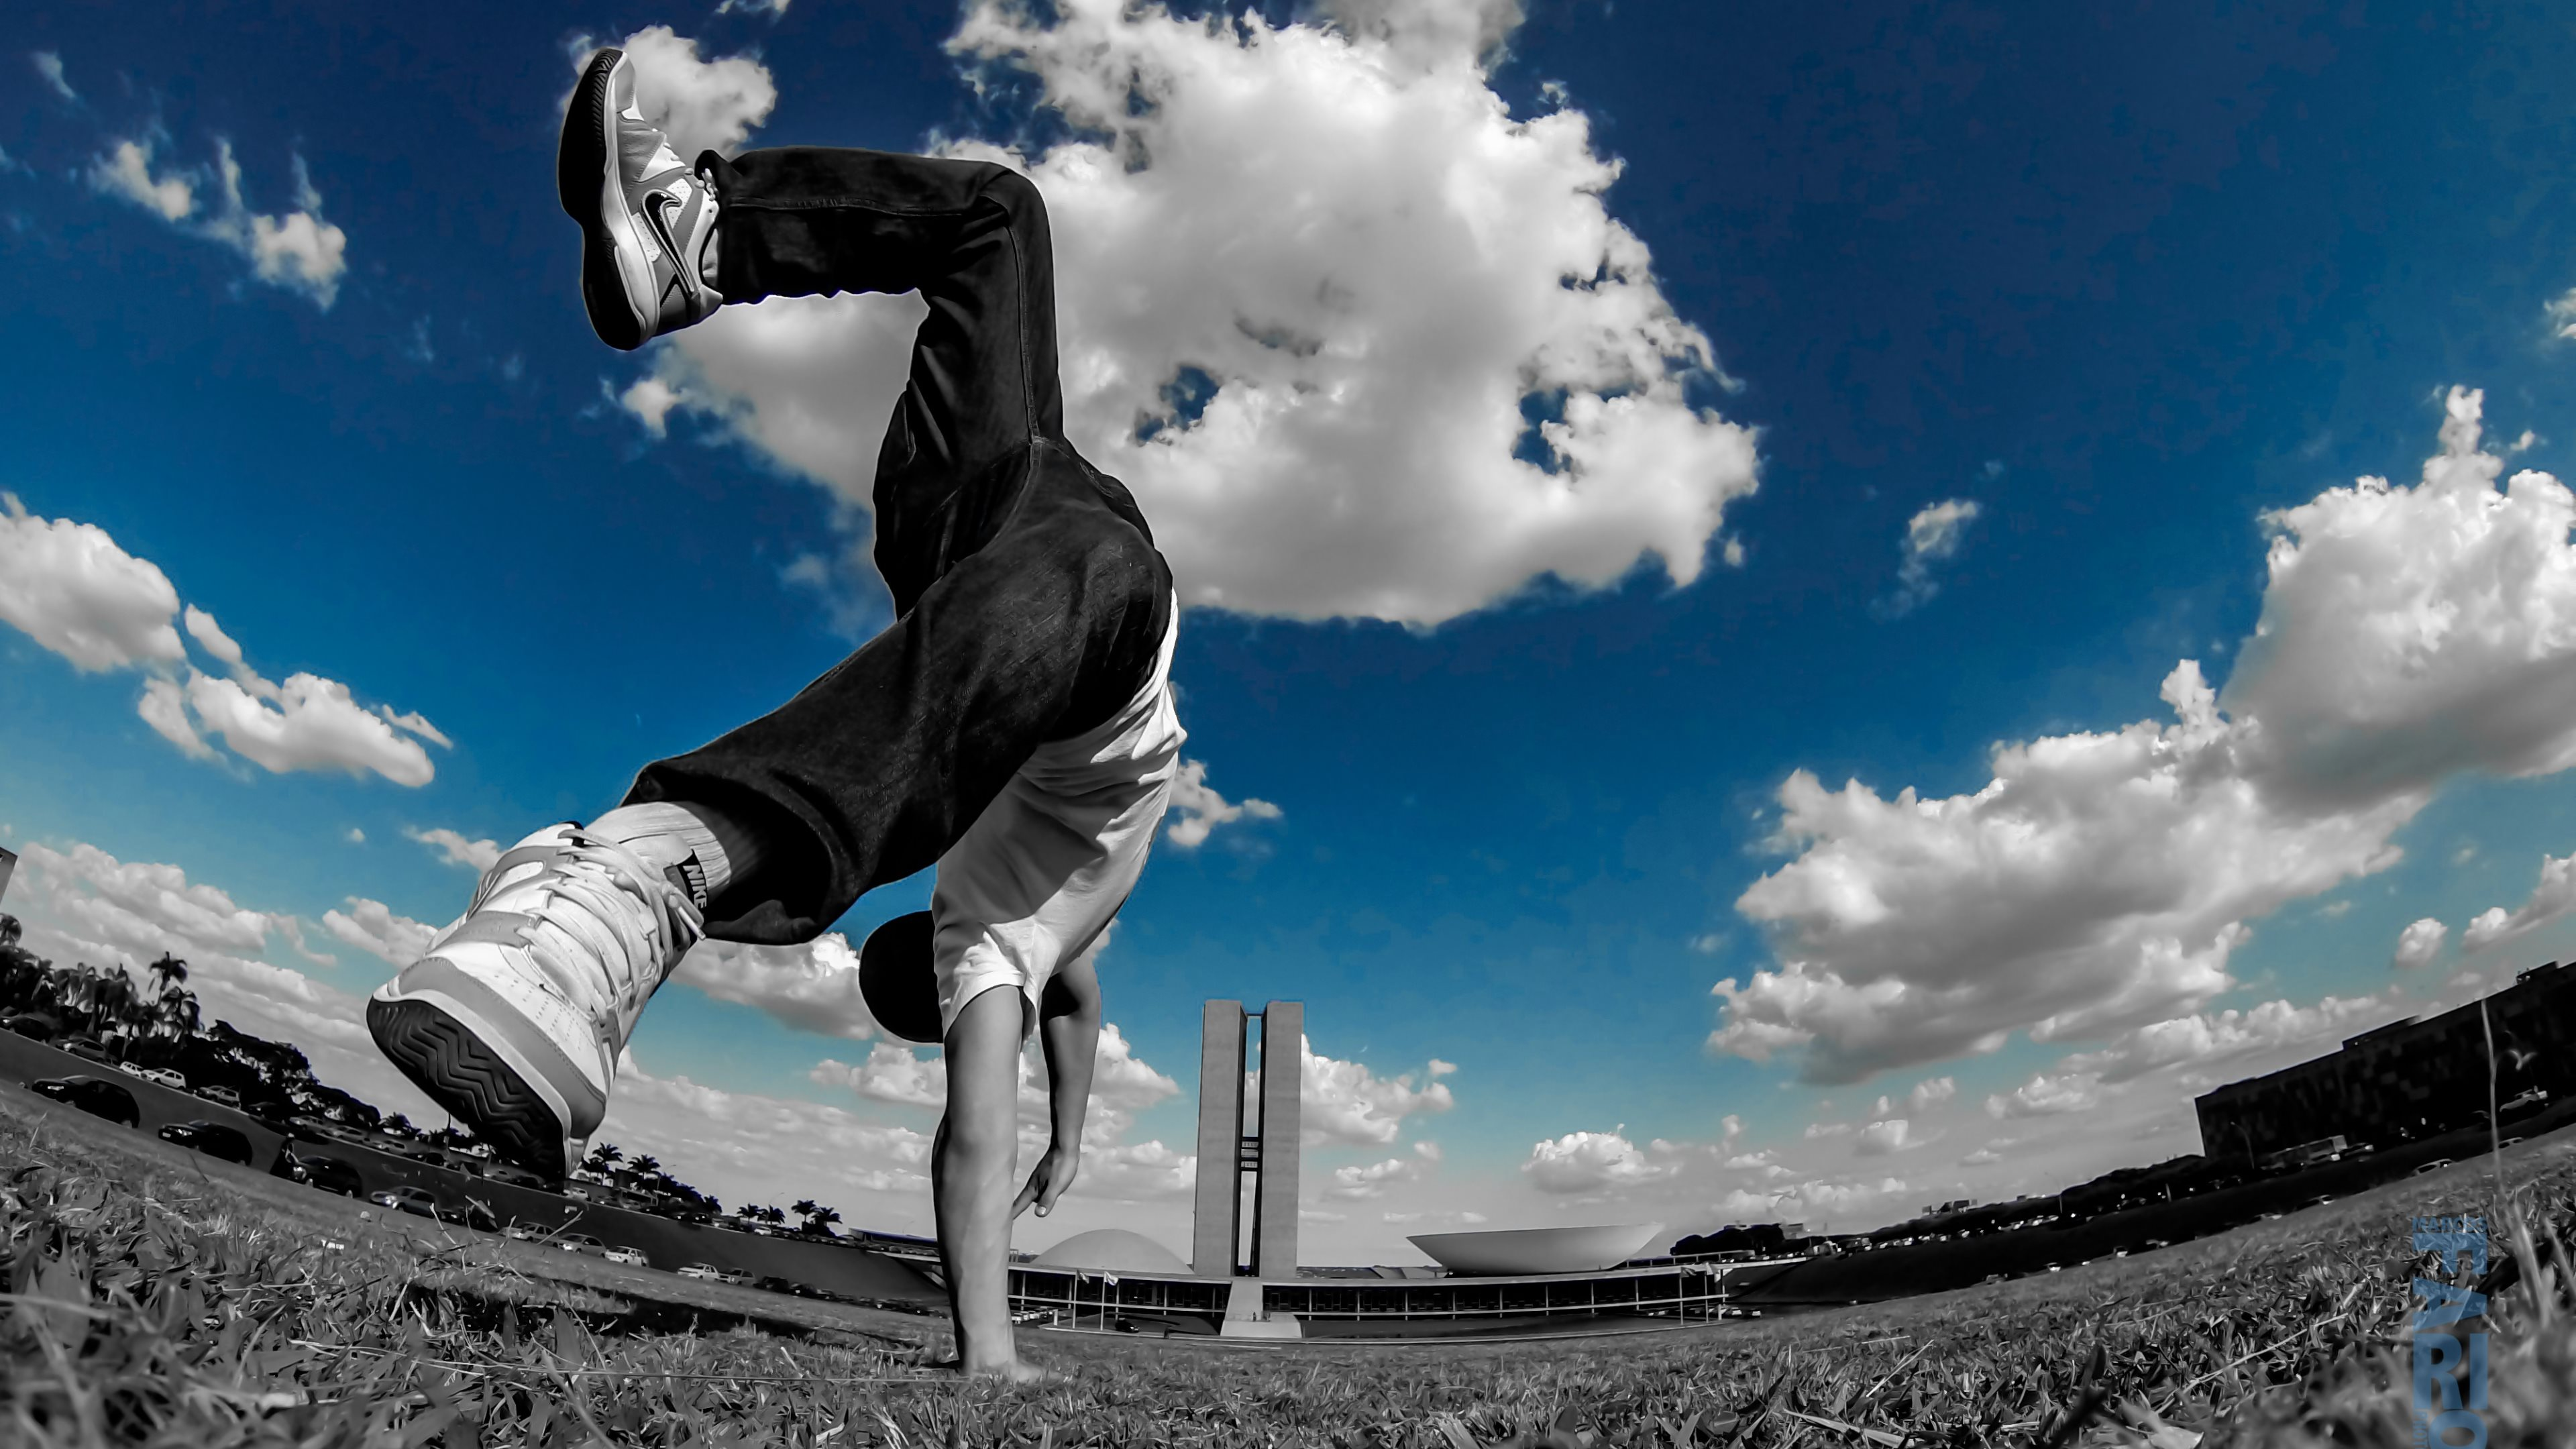 Backflip at Parkour Wallpapers HD Wallpapers 3840x2160